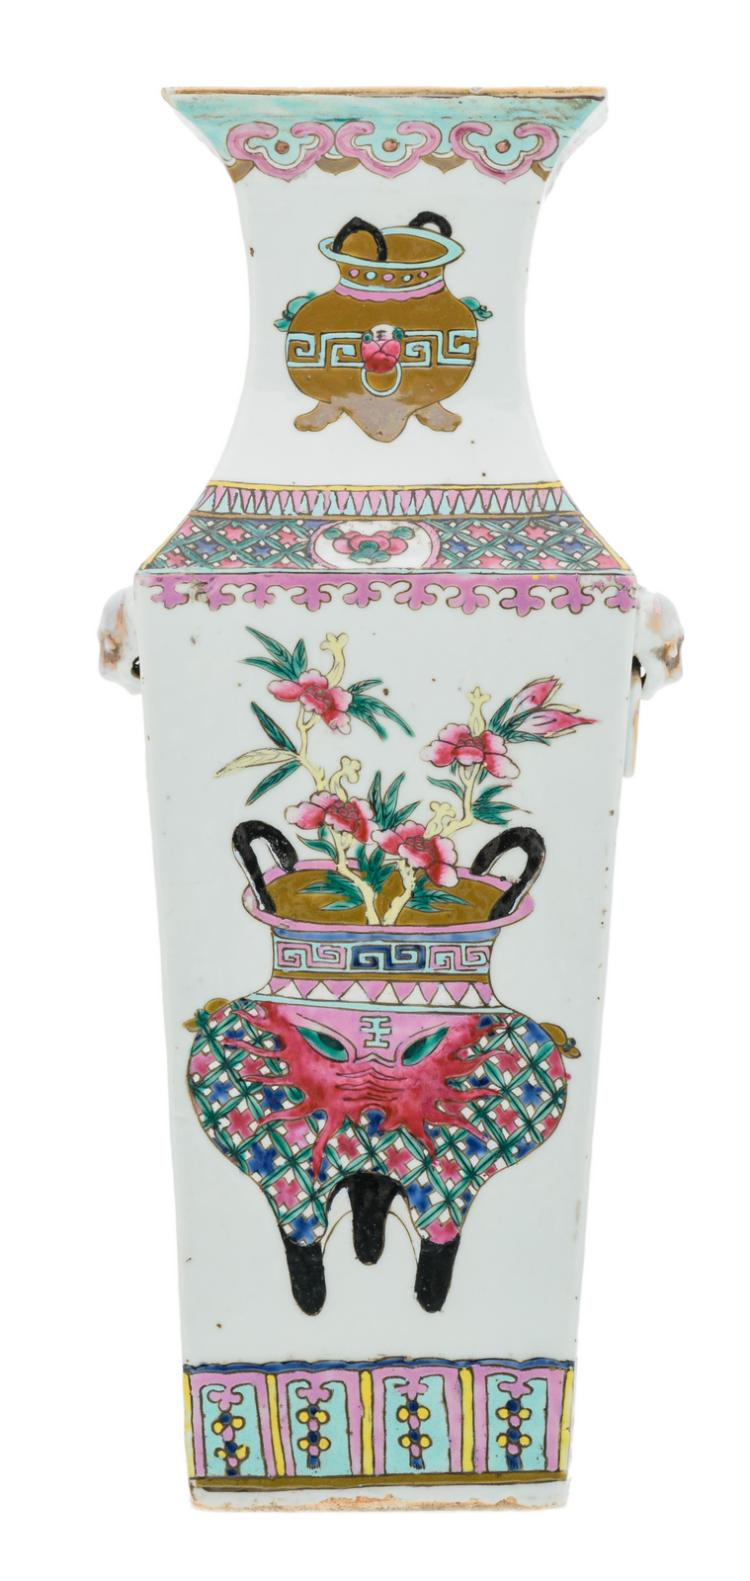 A Chinese famille rose quadrangular vase, decorated with flower vases and calligraphic texts, 19thC, H 44 cm